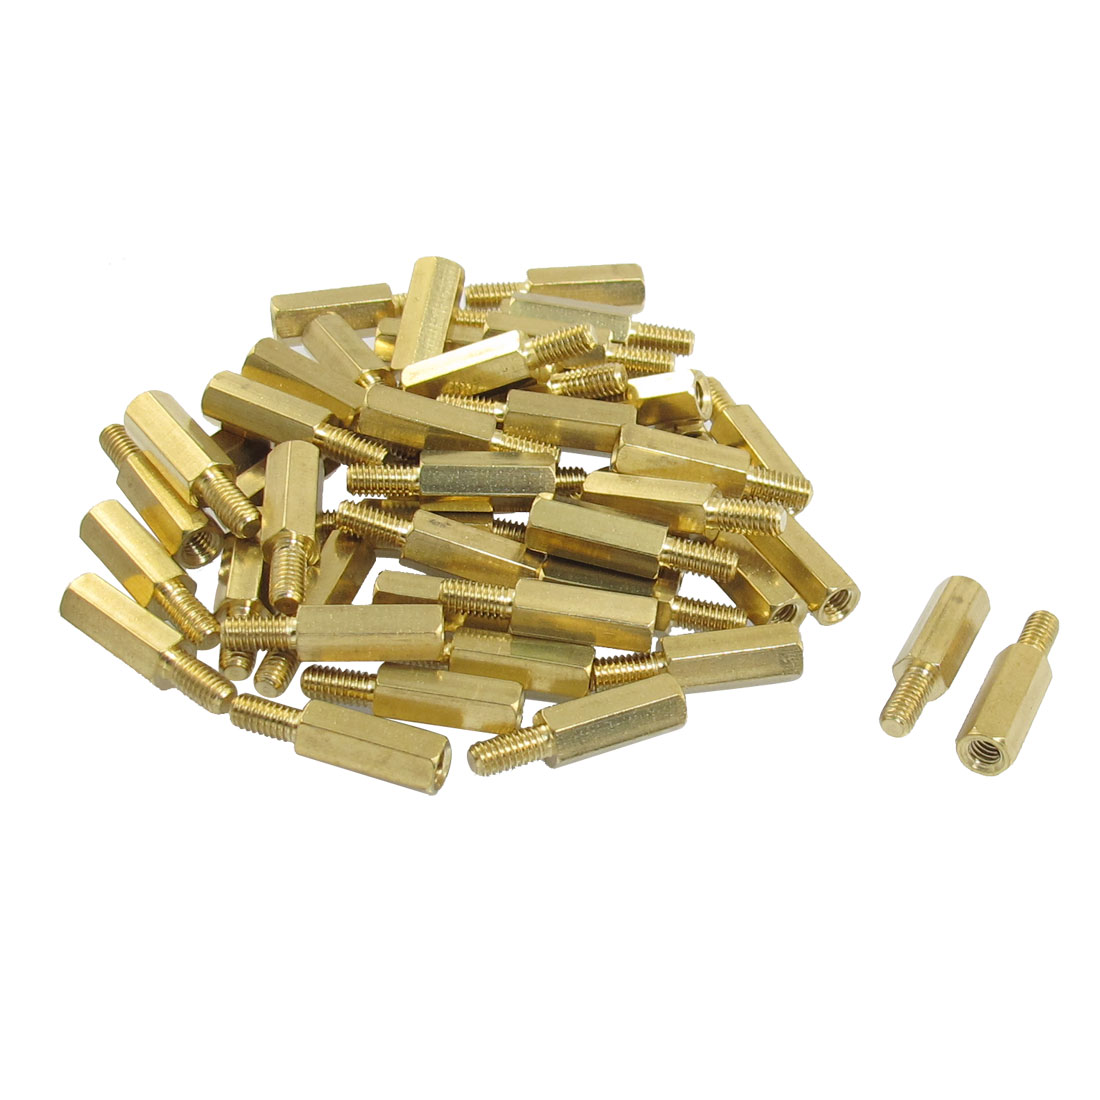 50 Pcs Male to Female Threaded Hexagonal Standoff Spacer M4x15mmx21mm